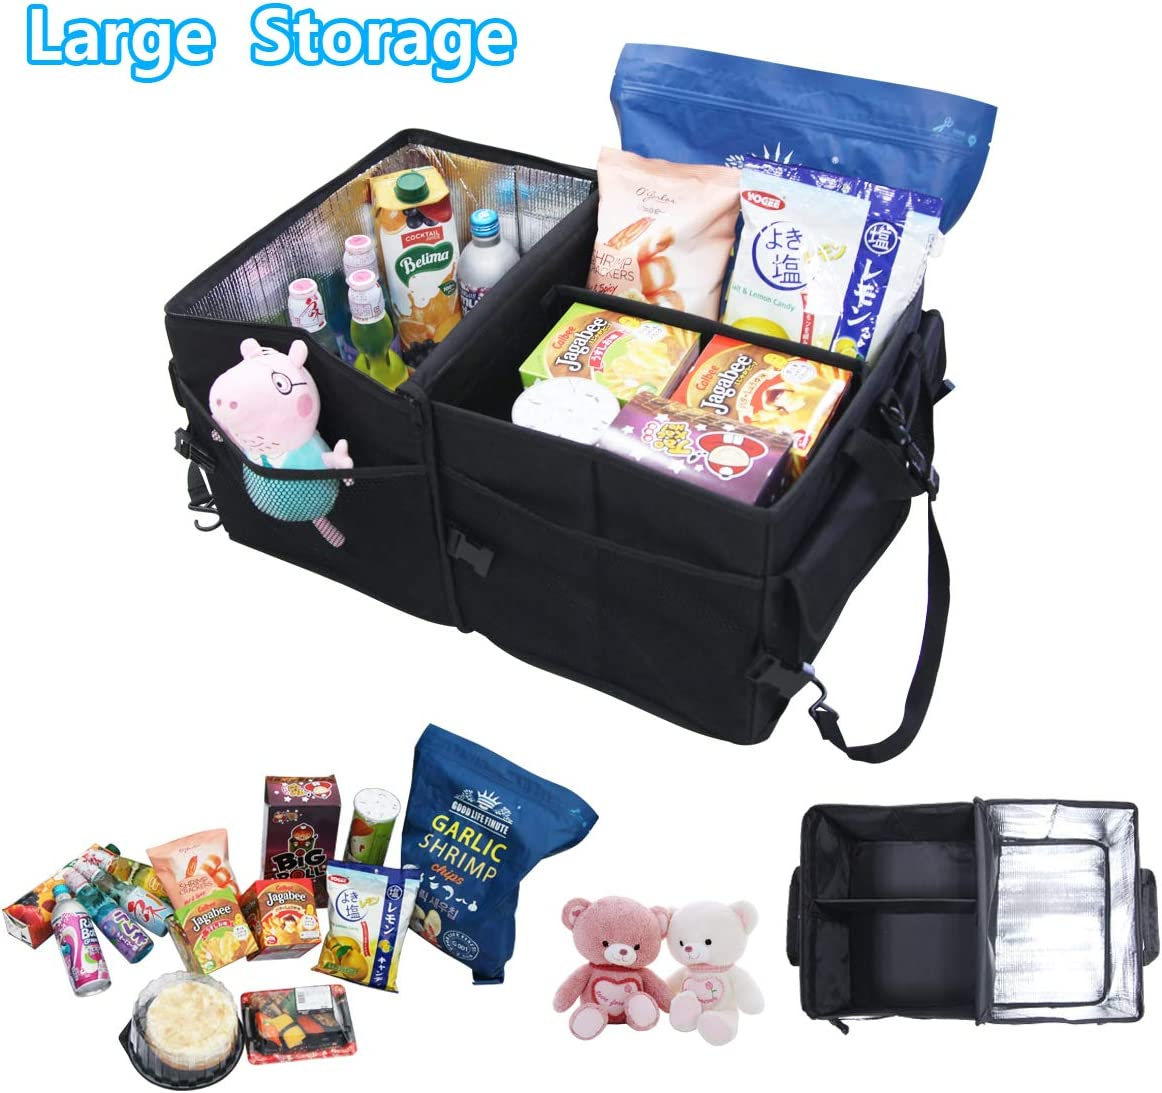 Compartment Collapsible Portable Trunk Storage Container with Non Slip Bottom Strips Foldable Waterproof Cover Car Storage Box for SUV Tepoinn Car Trunk Organizer with Cooler